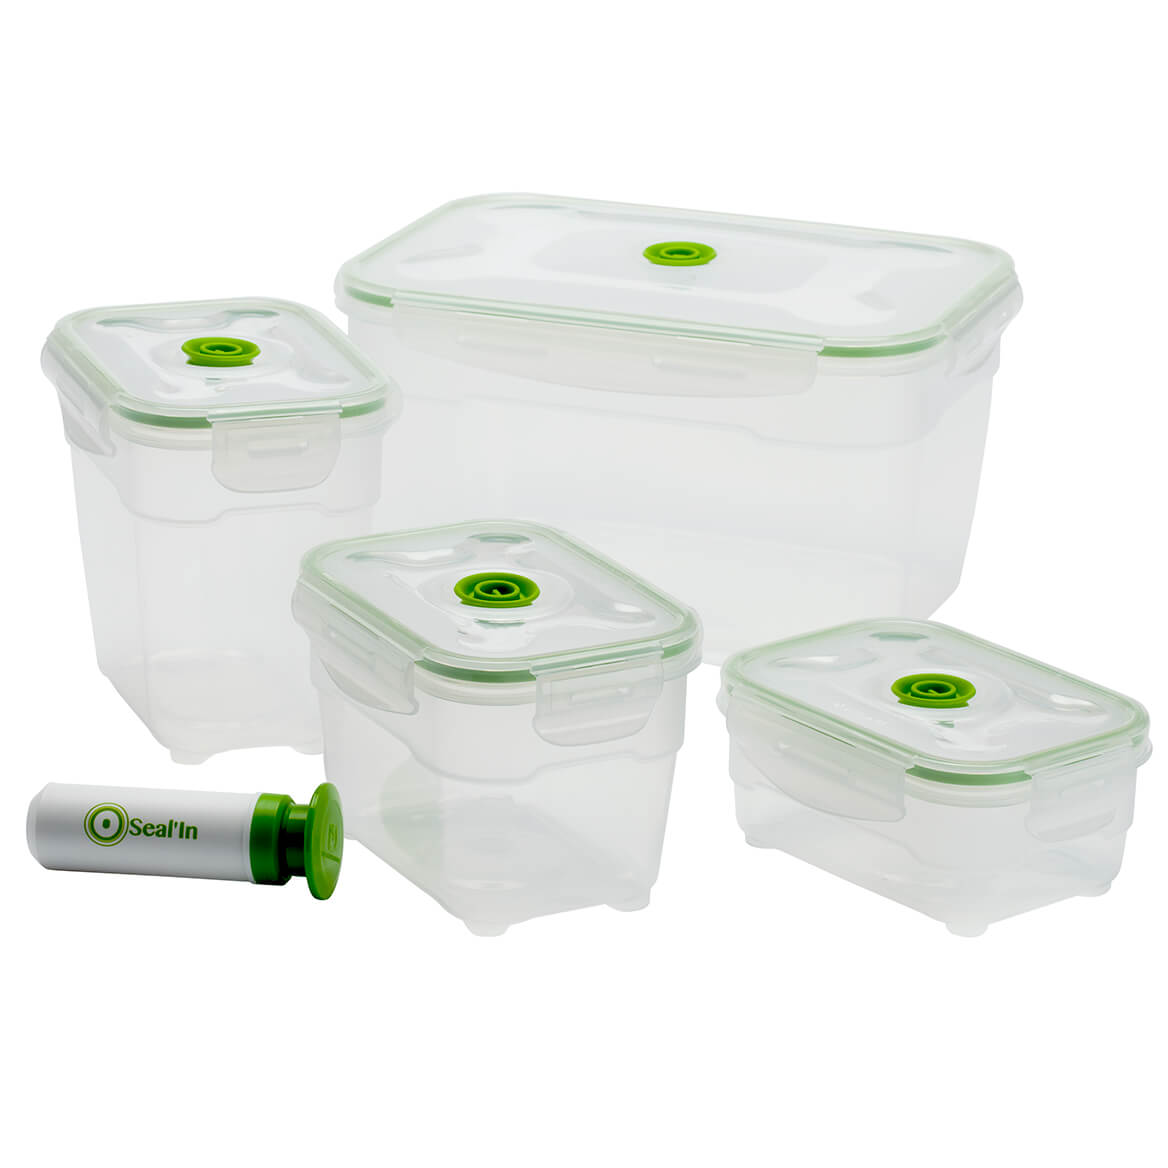 Seal'In 9pc Nestable Storage Containers